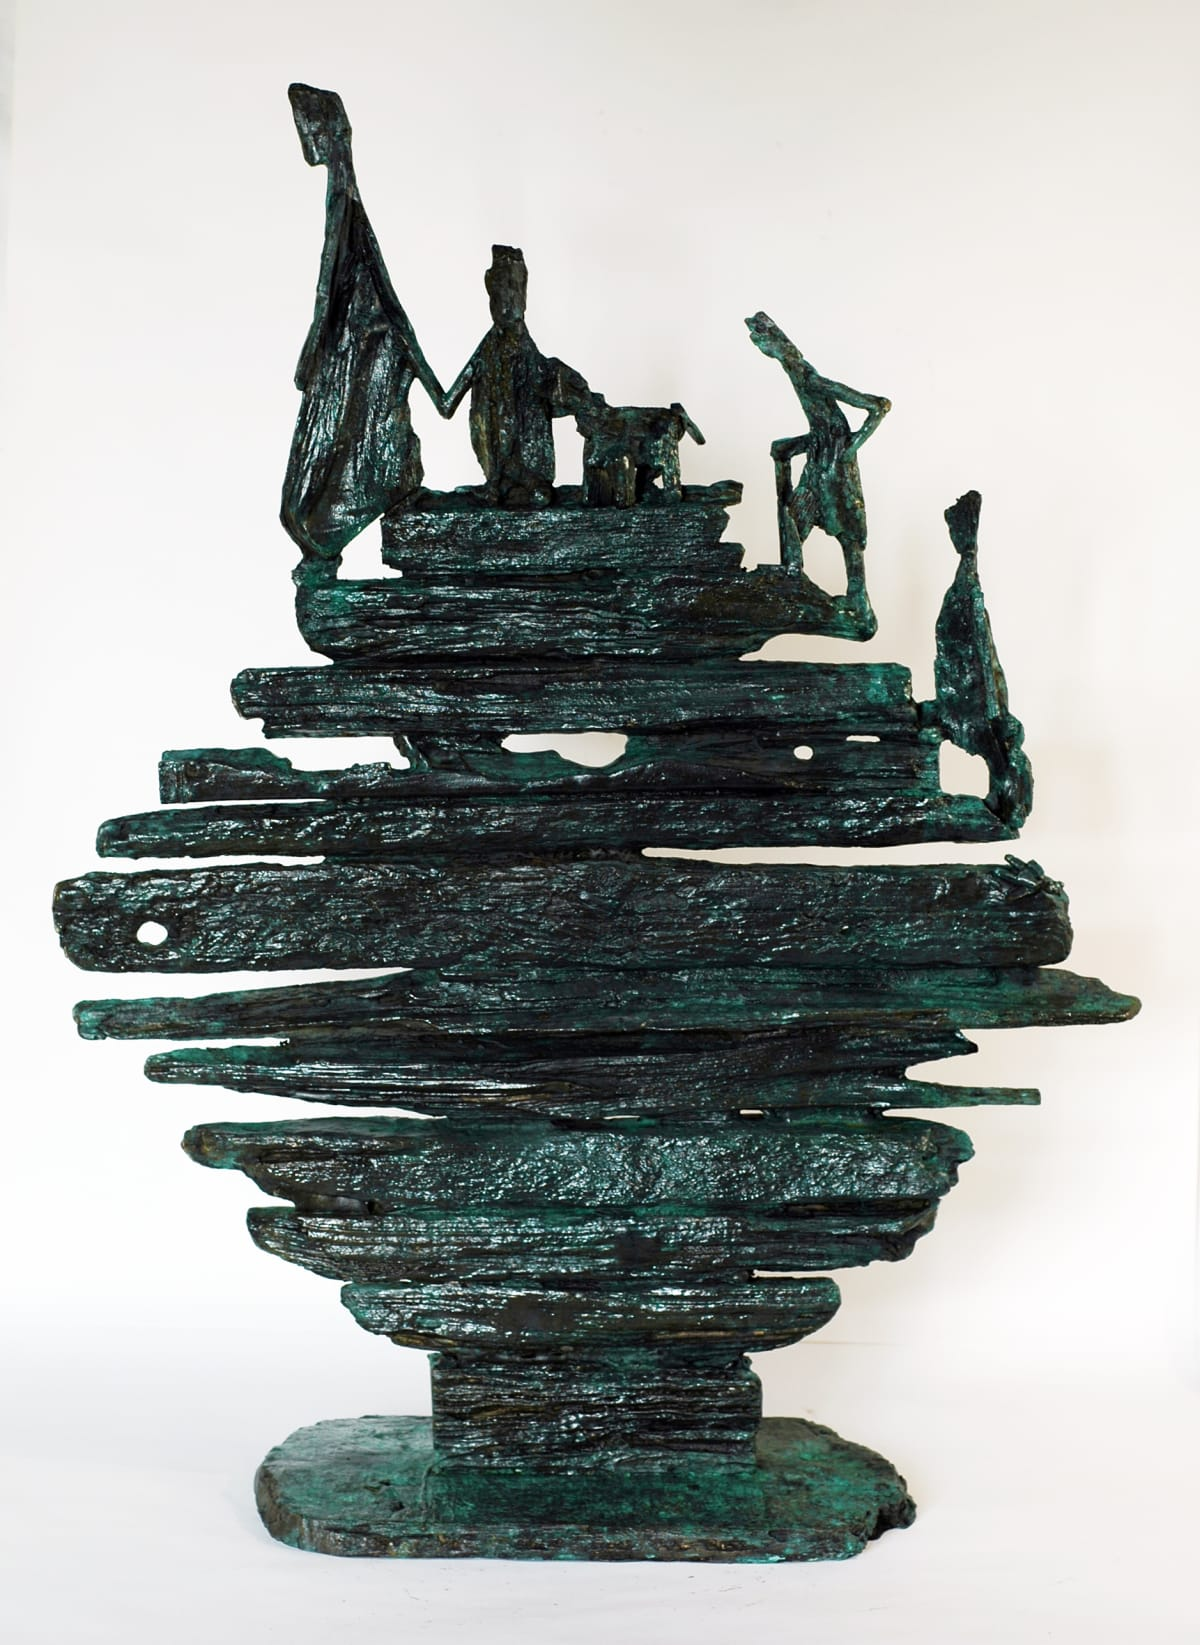 Helen Sinclair The Journey, 2017 Bronze Sculpture 66 x 51 x 19 cm 26 x 20 1/8 x 7 1/2 in Edition 5 of 9